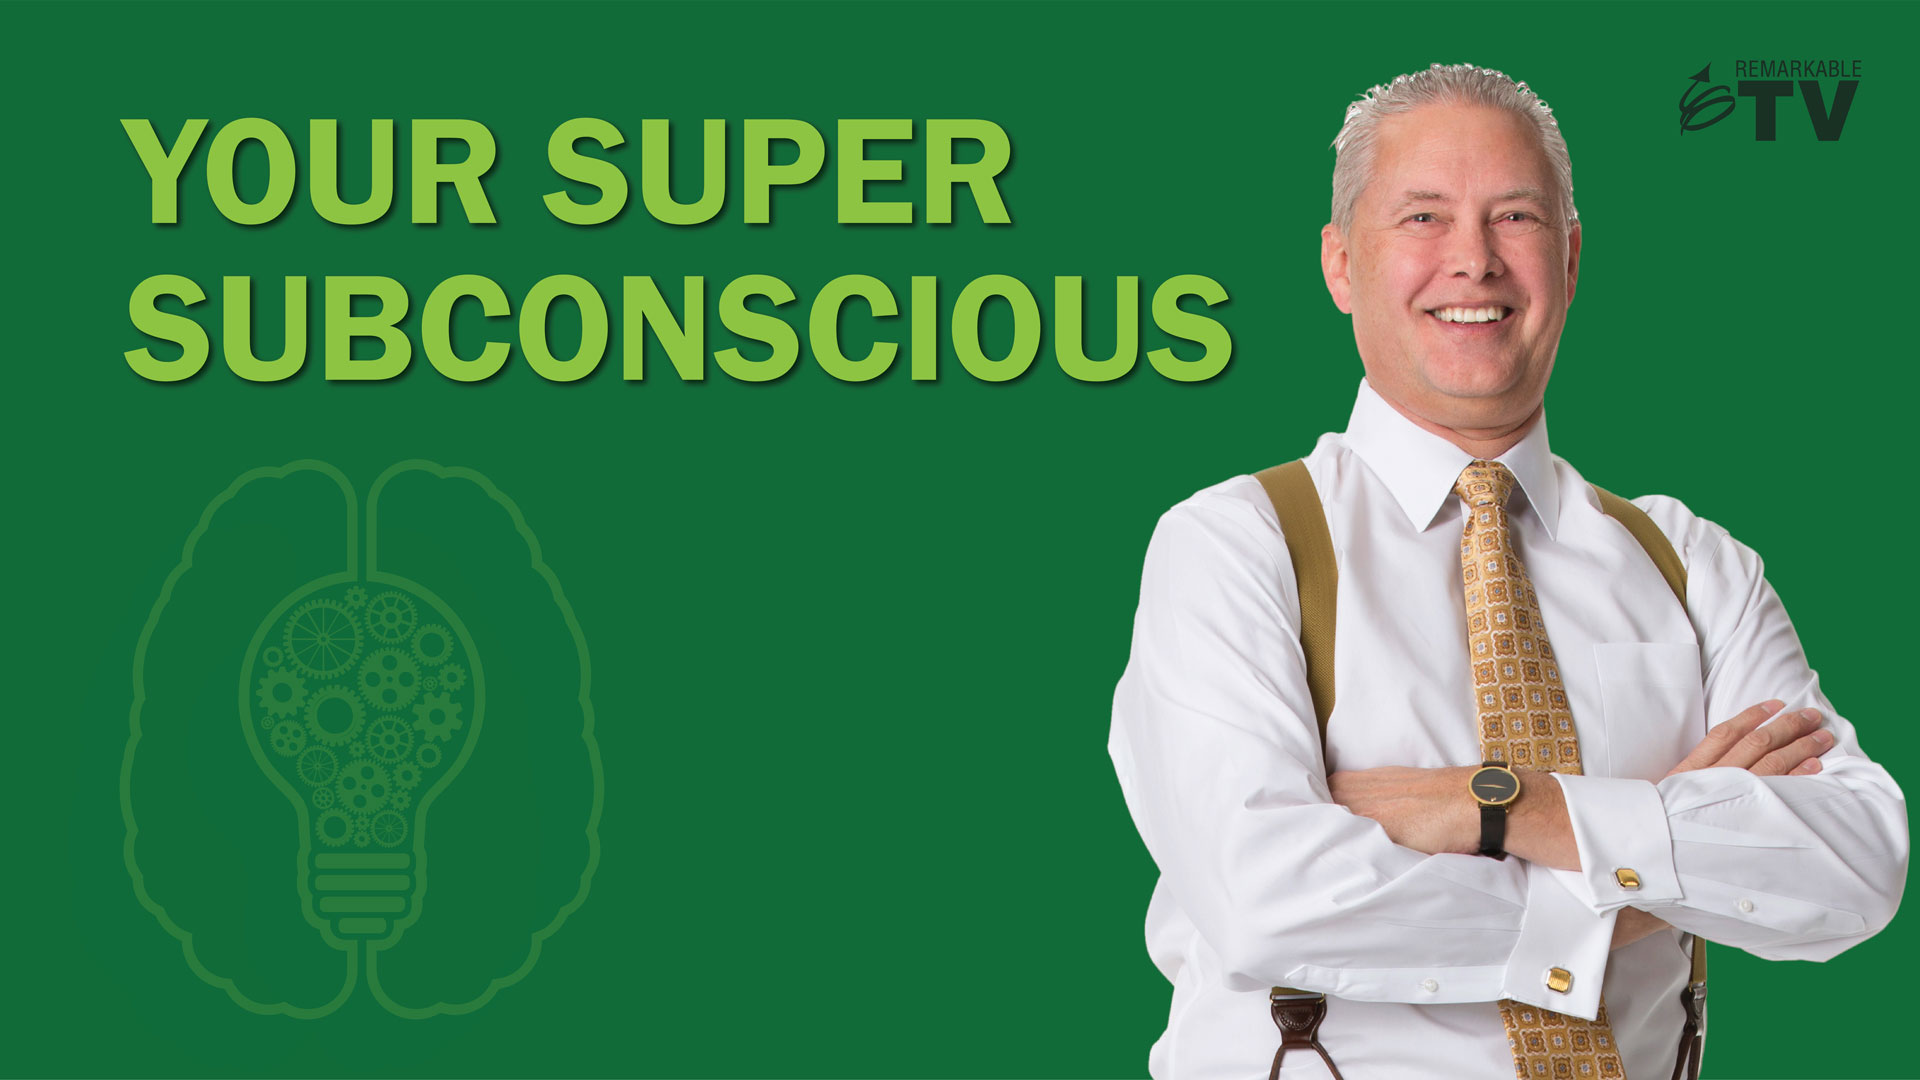 Your Super Subconscious - Remarkable TV with Kevin Eikenberry